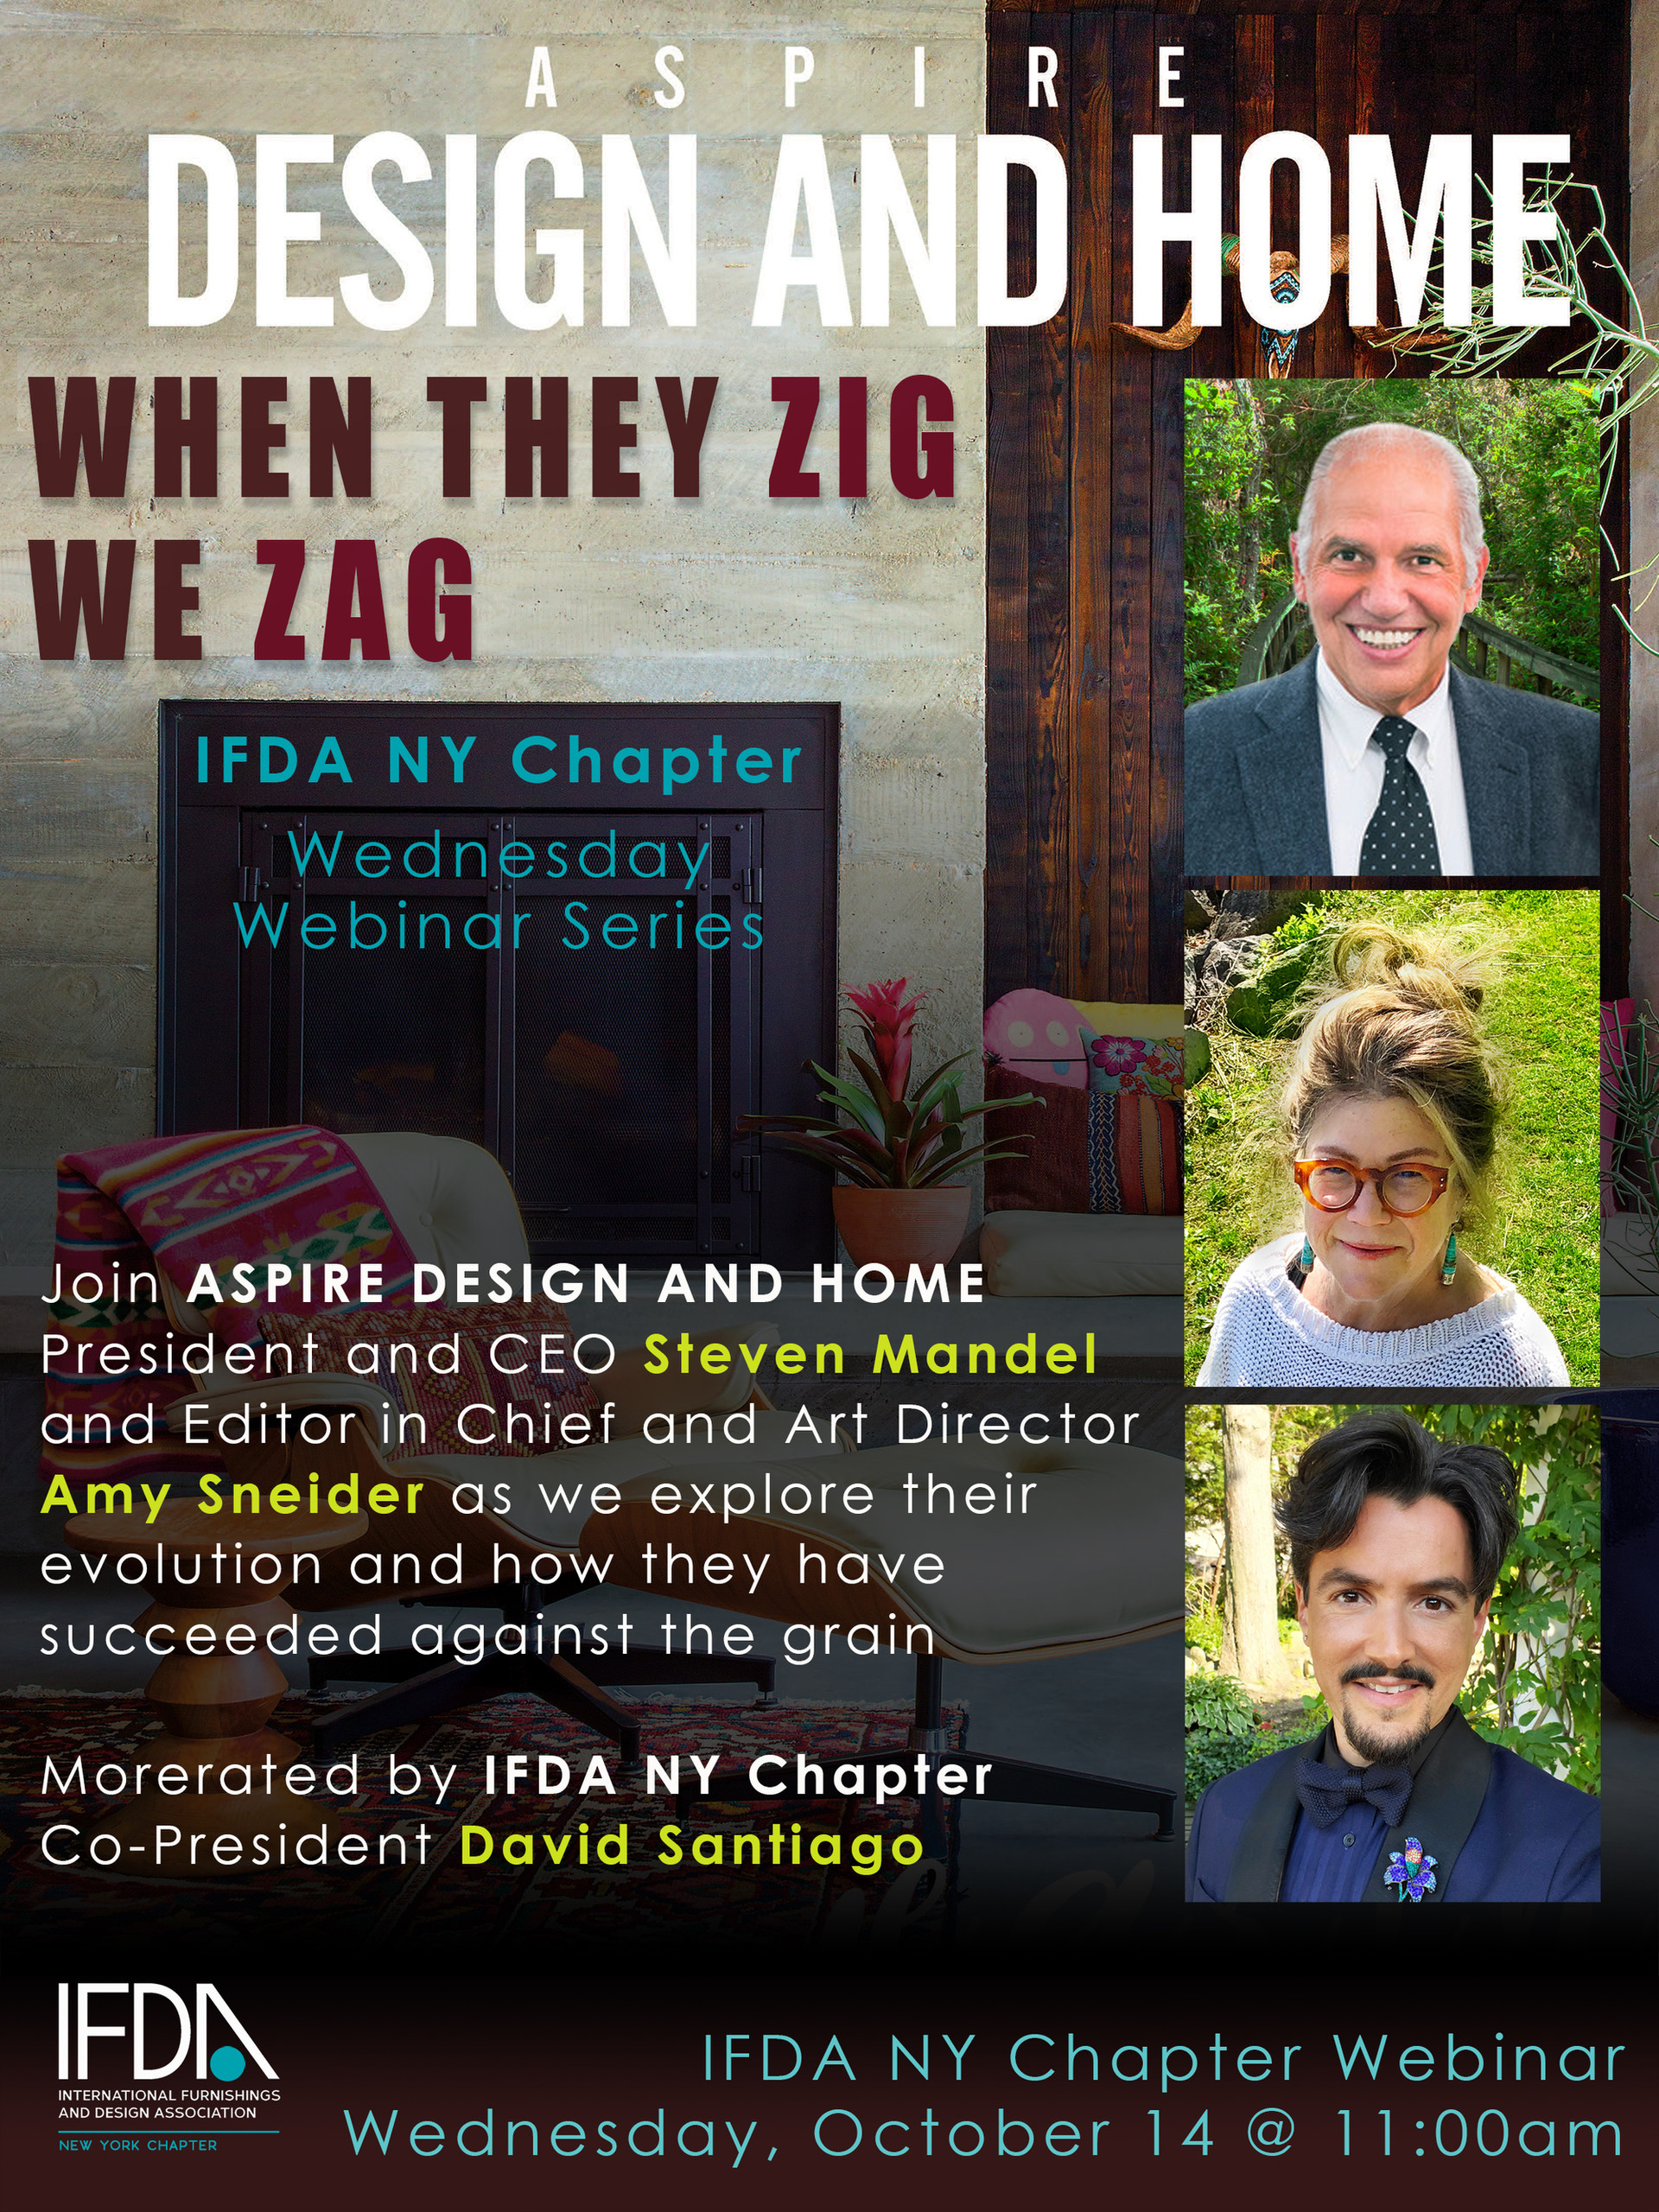 ASPIRE DESIGN AND HOME - IFDANY Panel